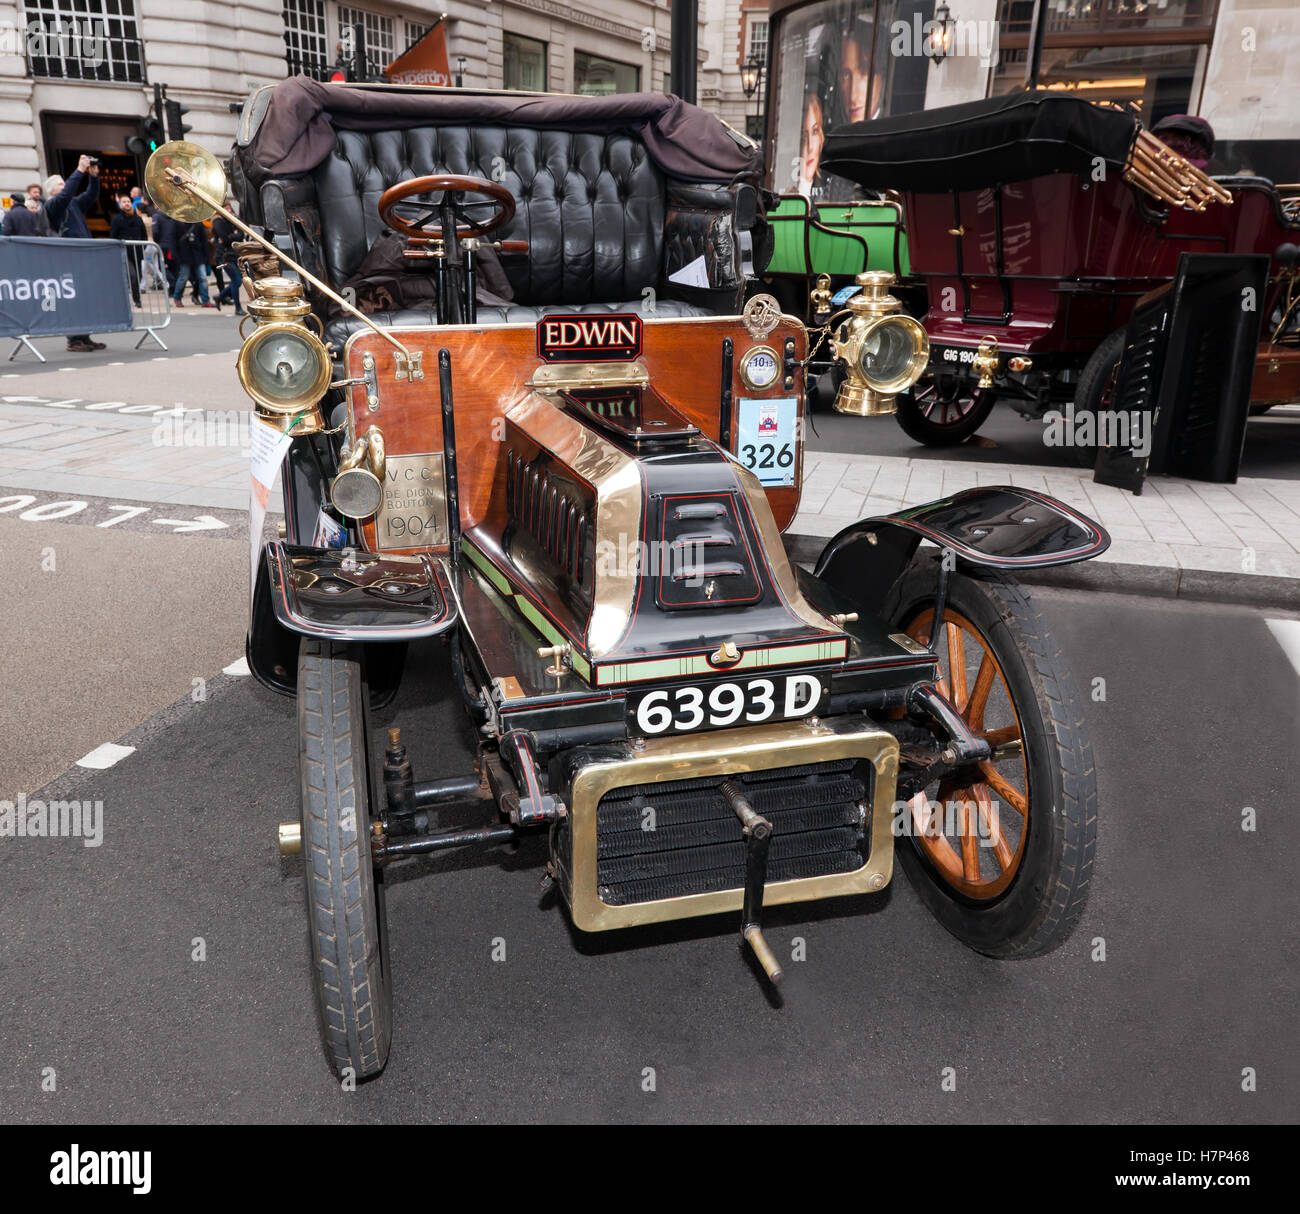 A 1904, De Dion Bouton Victoria 1 Cylinder, 8HP veteran car on display in the Concours d'Elegance, at Regents Street, Stock Photo